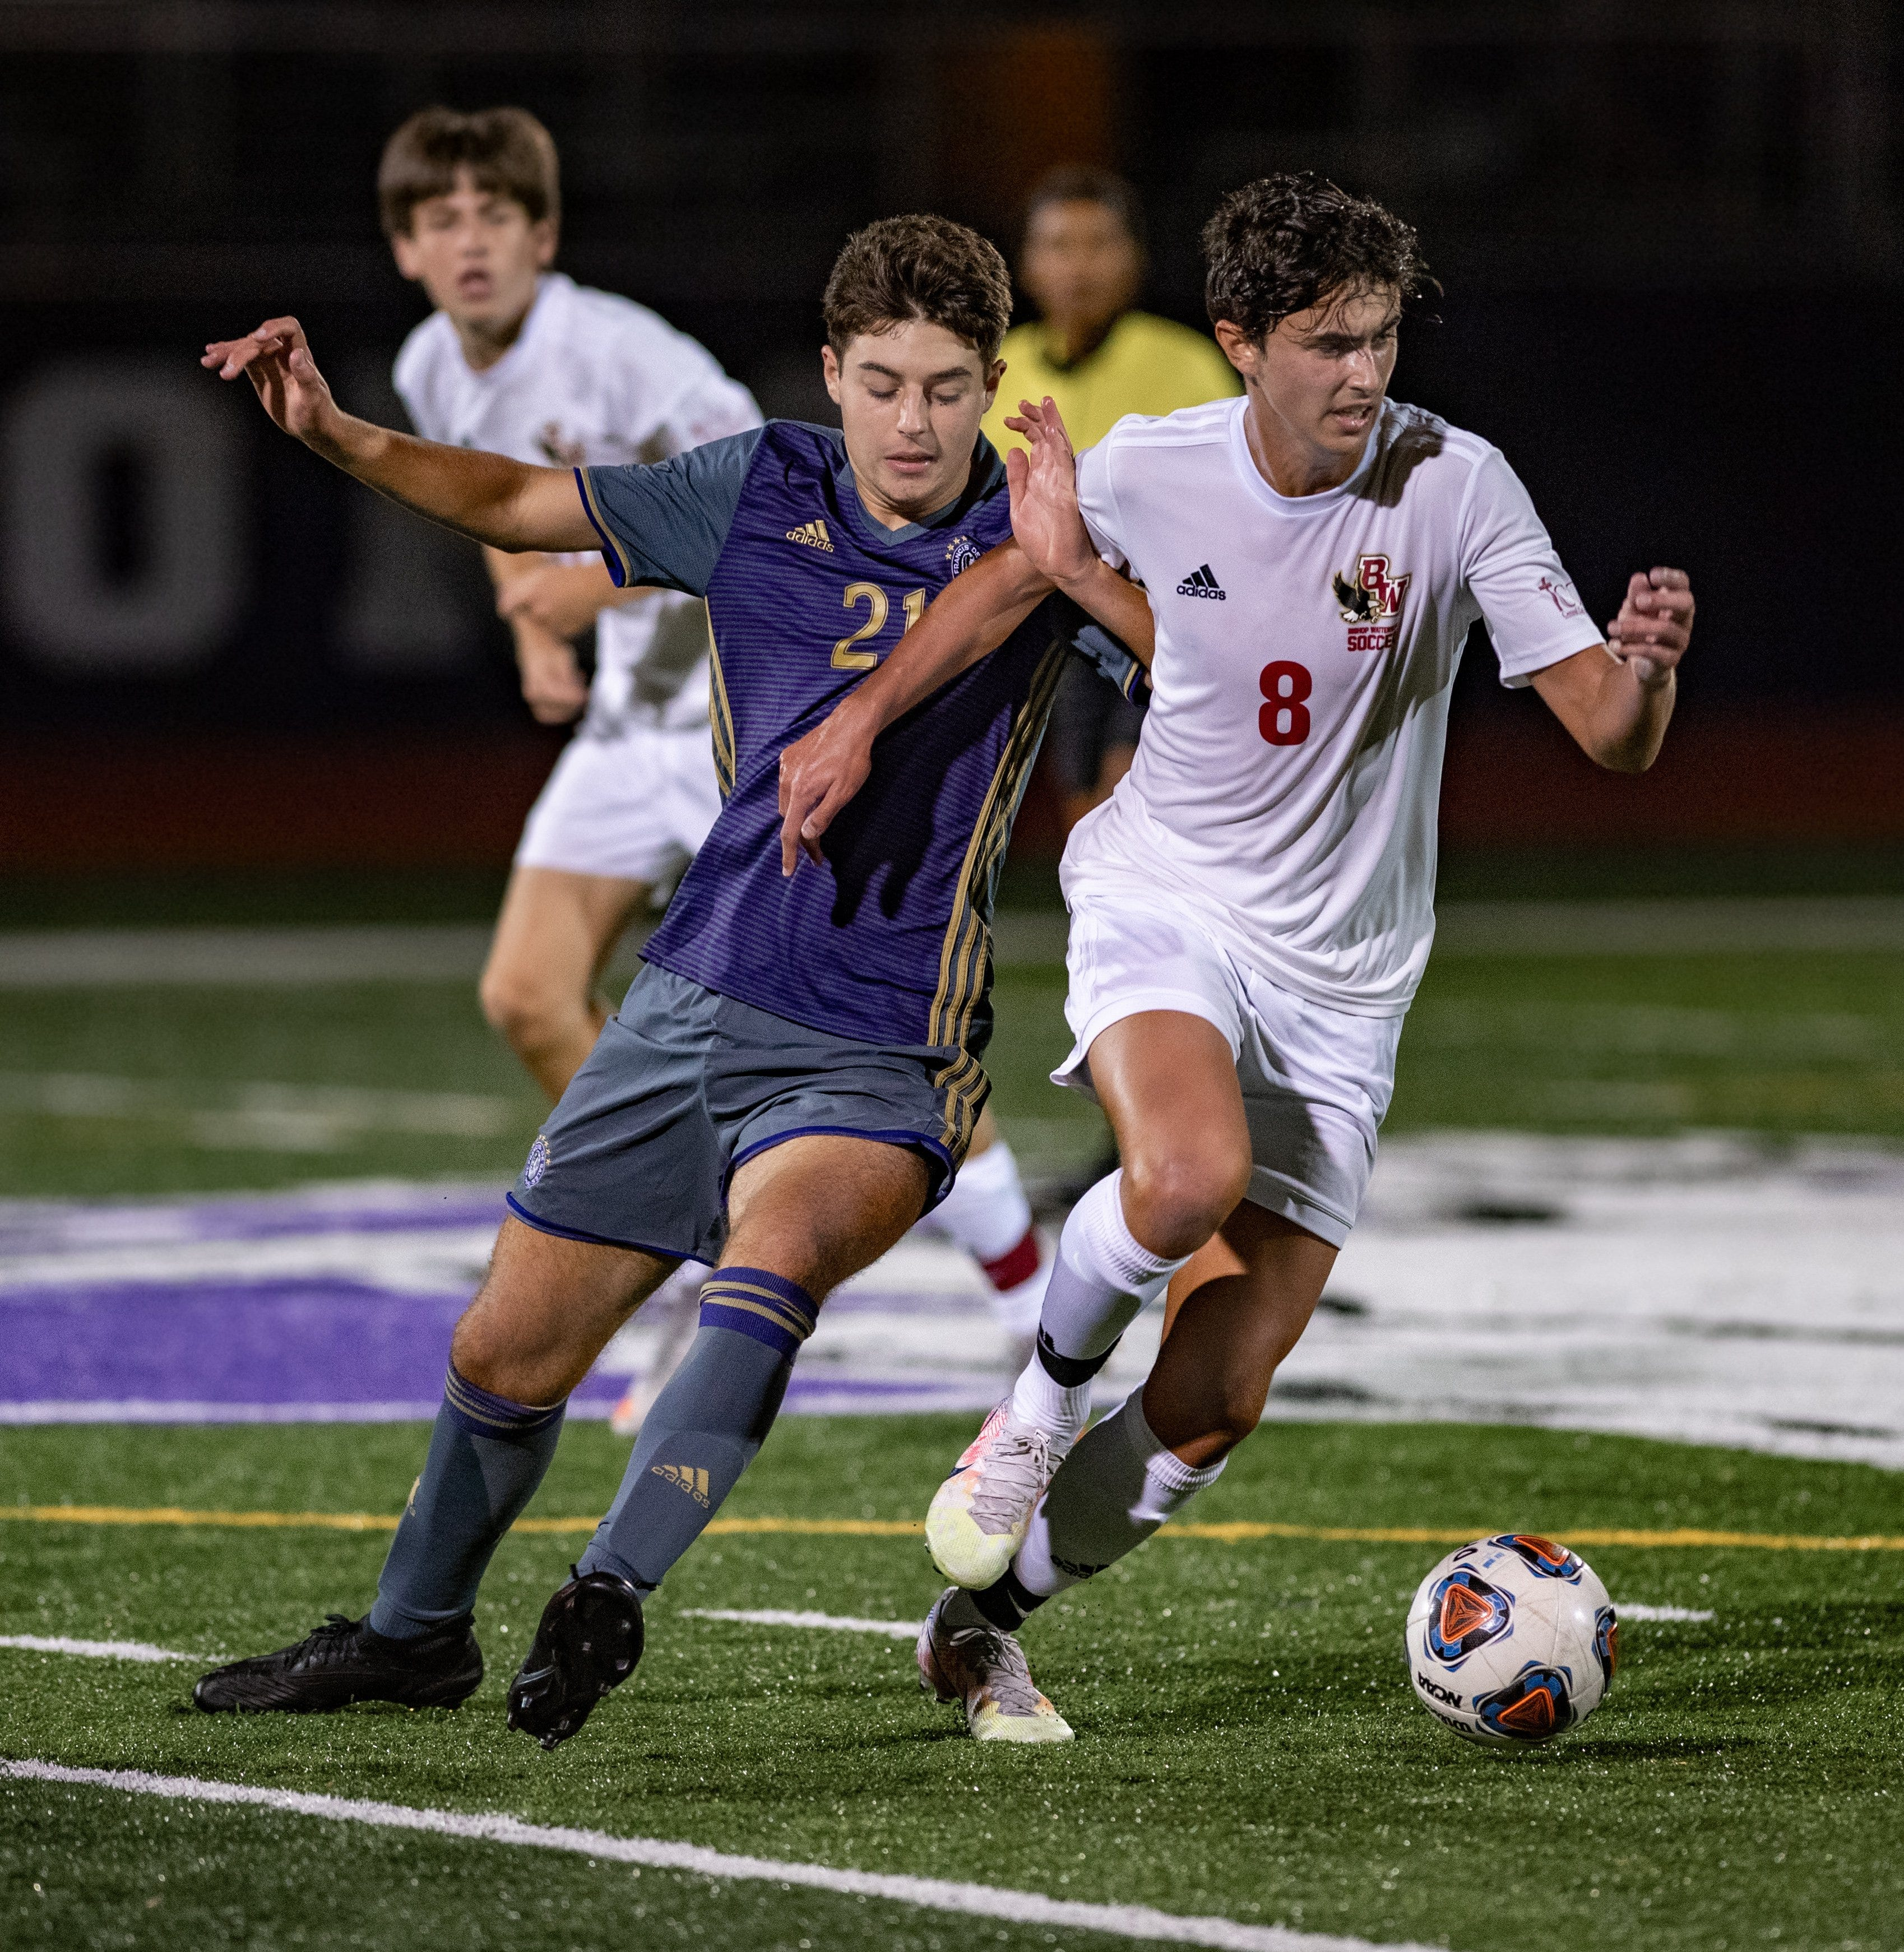 DeSales' Vigo Bertolo (left) and Watterson's Trent Maisano battle during the Stallions' 2-1 win Sept. 15. The teams met again Oct. 31 with a Division II district championship on the line.